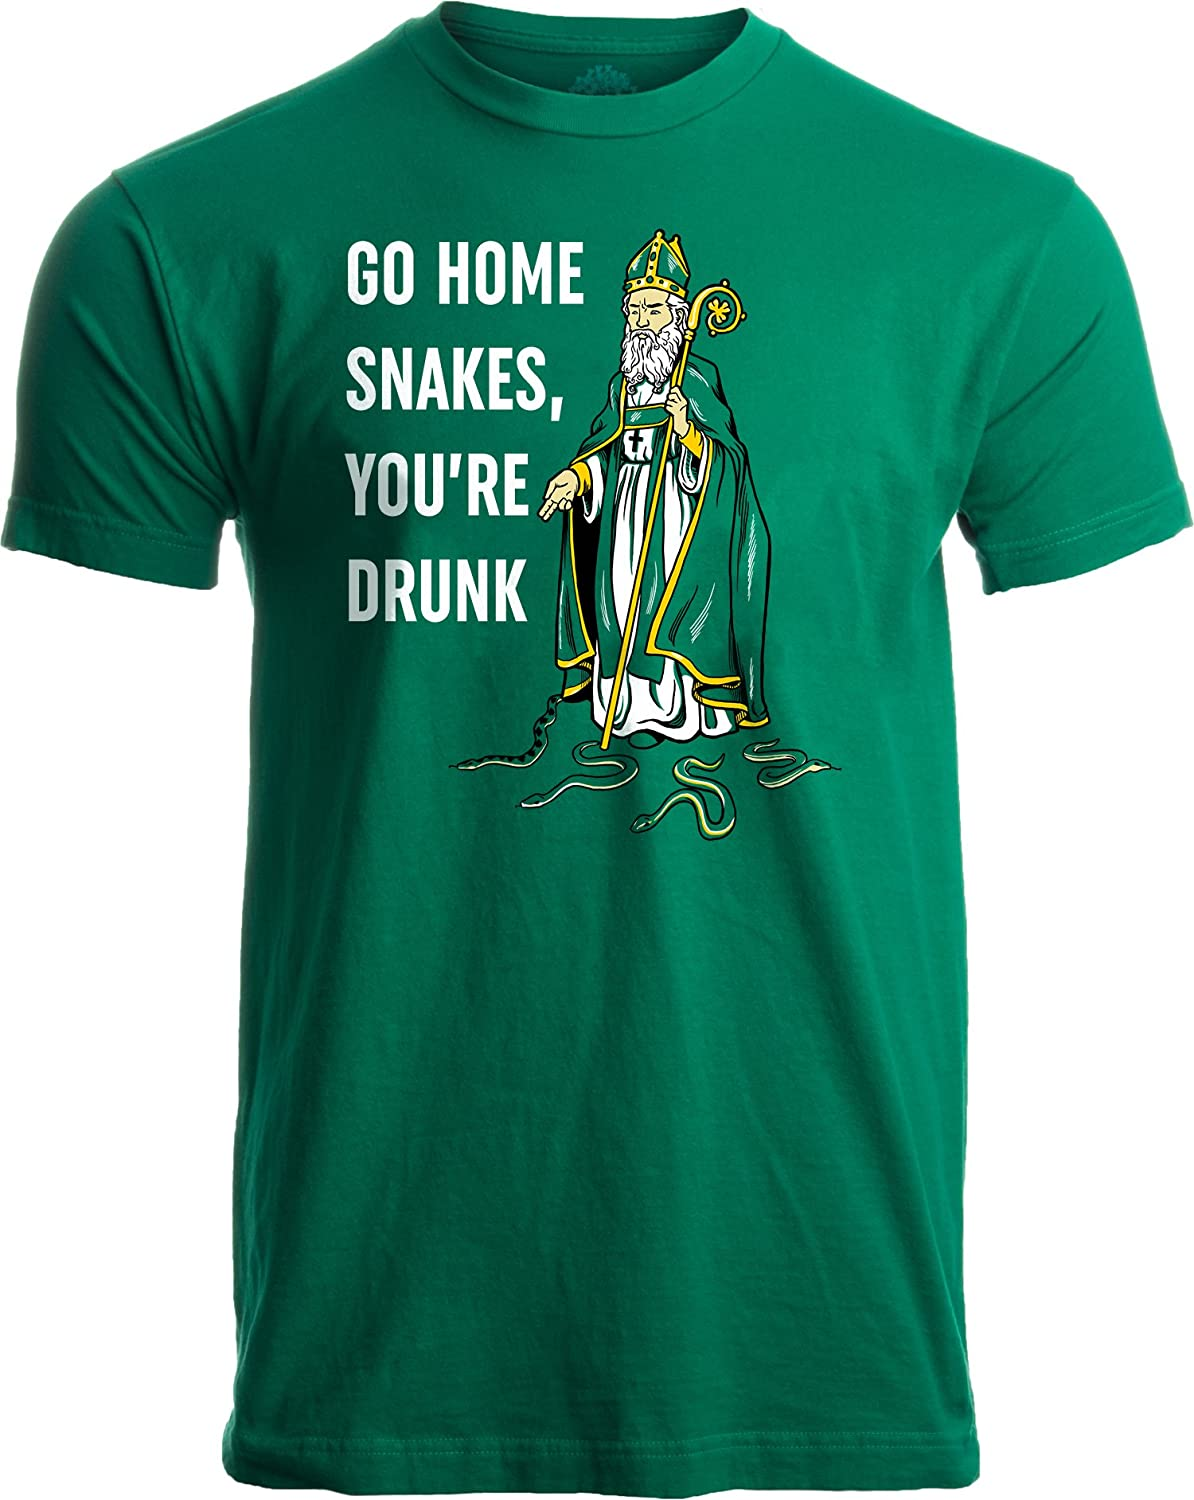 Ann Arbor T-shirt Co. Go Home Snakes, YouRe Drunk | Playera ...